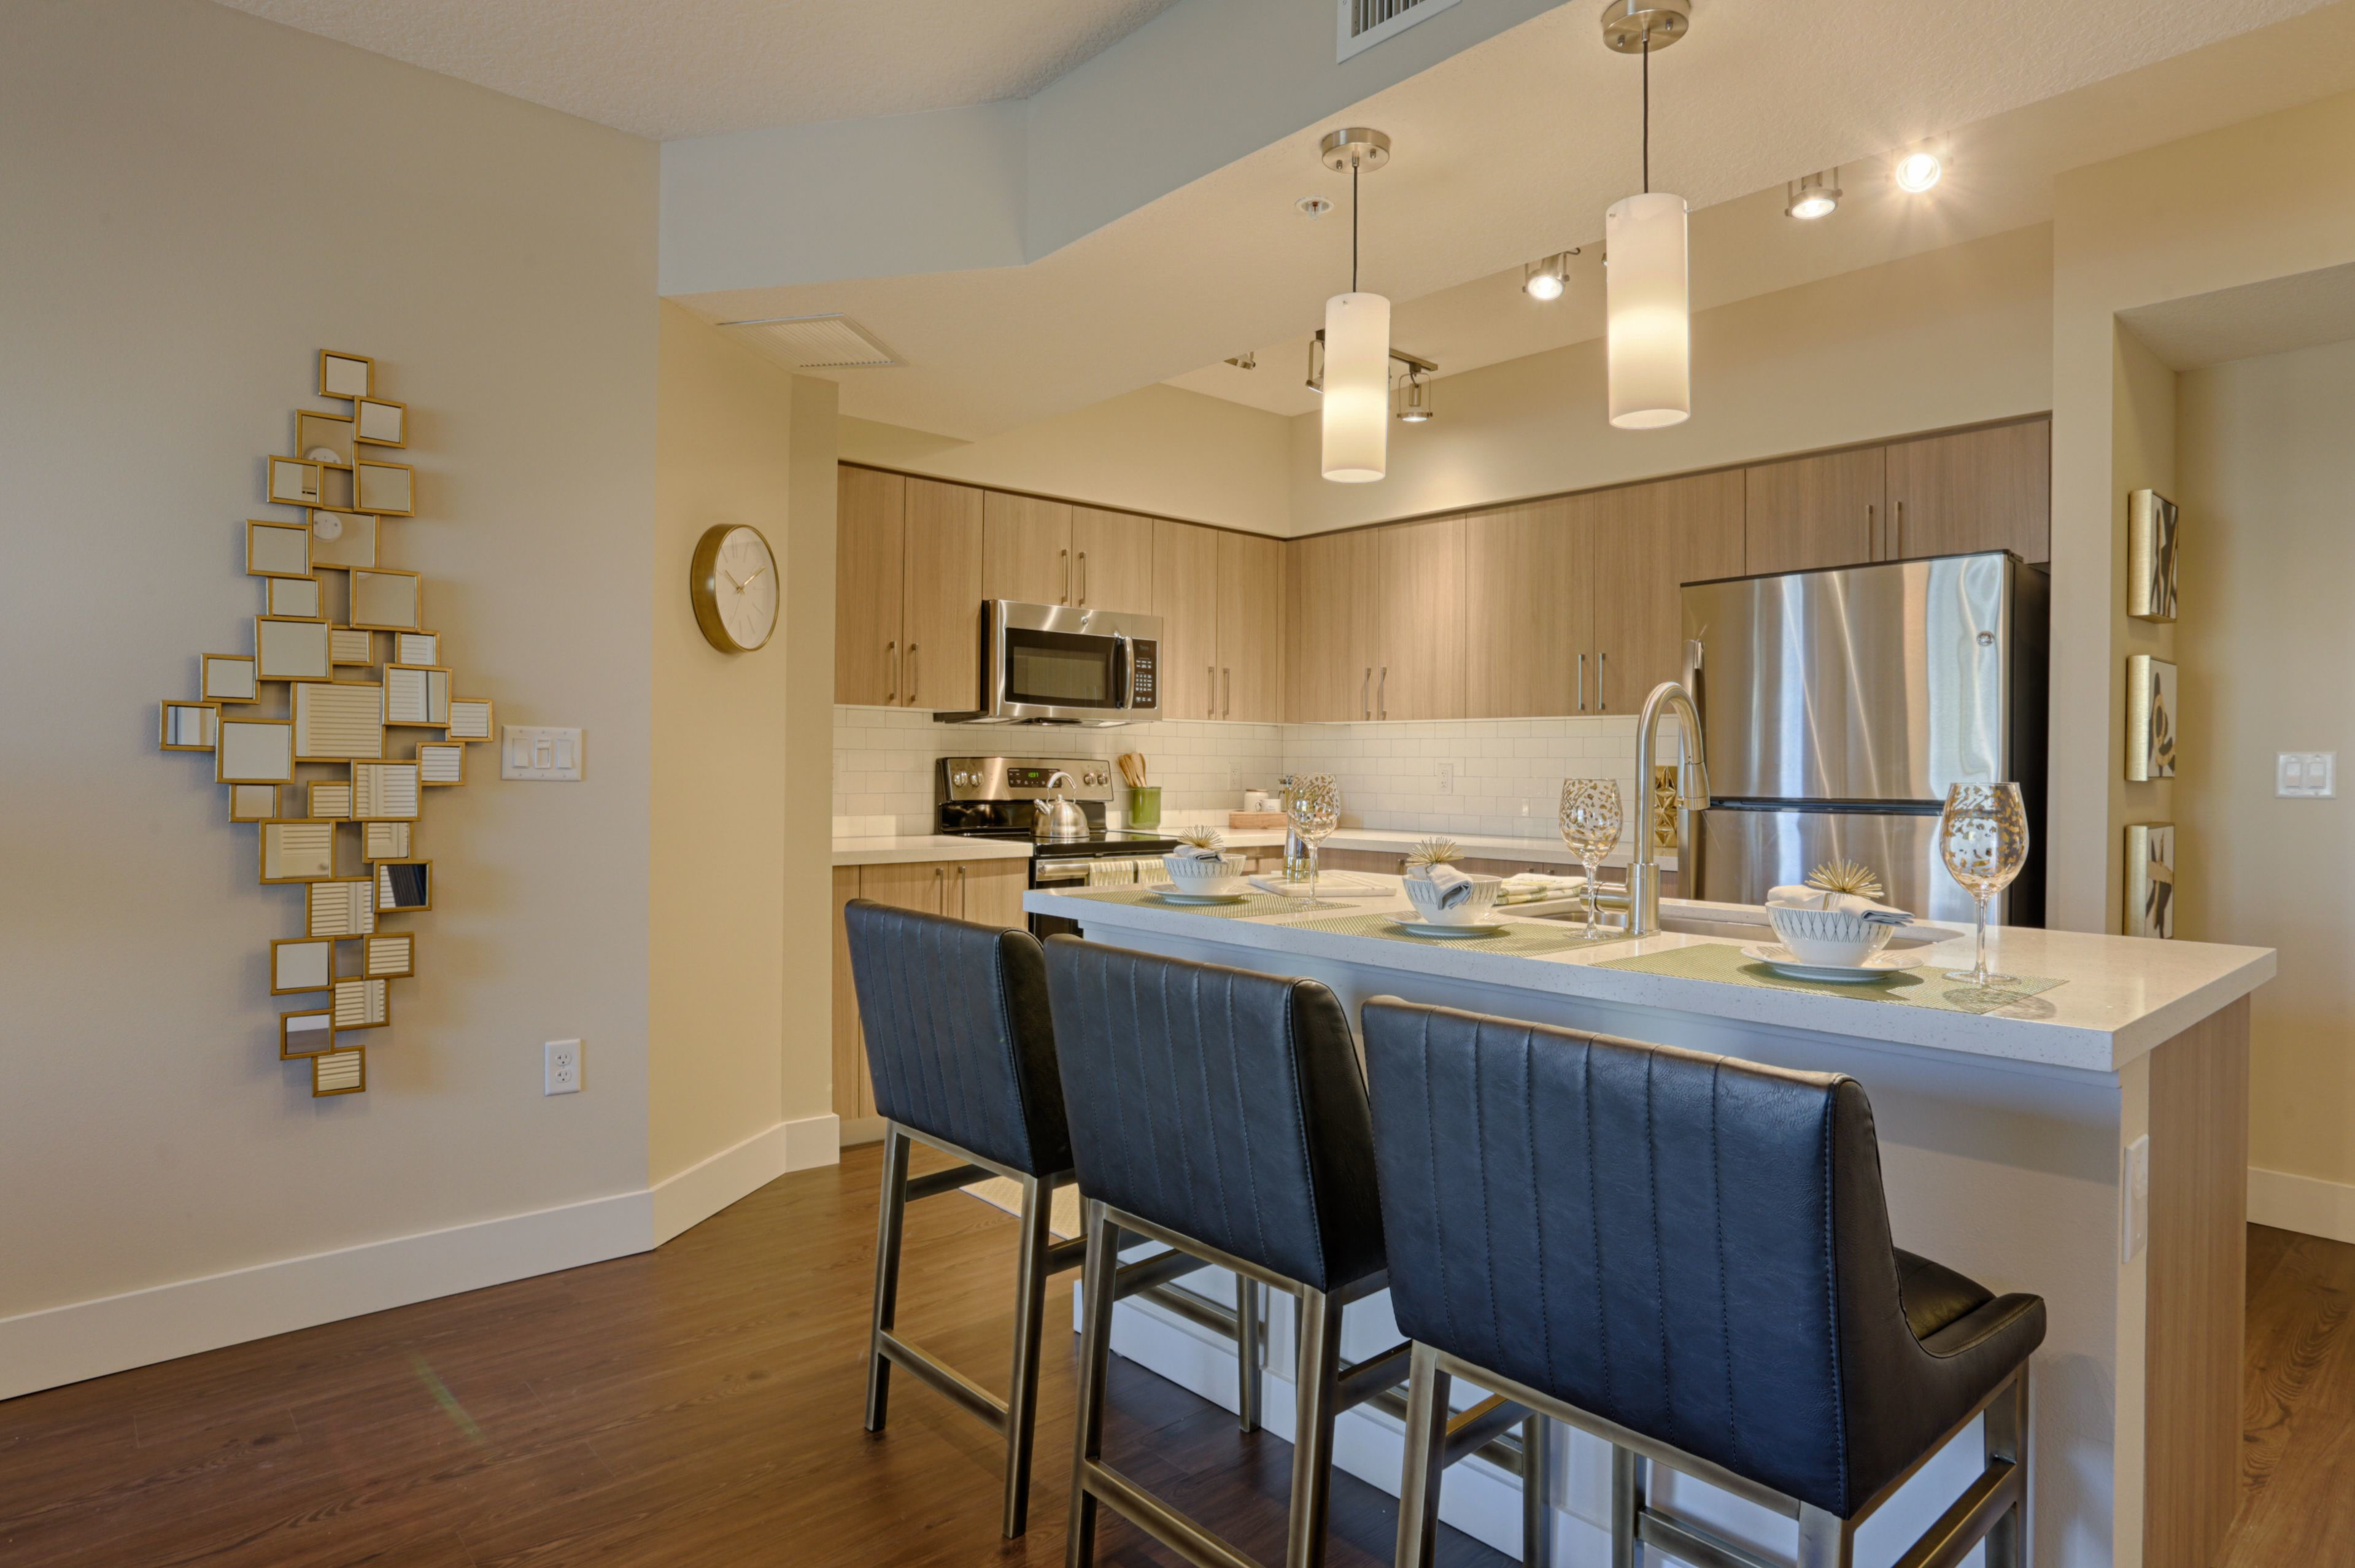 20 Best Apartments In Boynton Beach, FL (with pictures)!